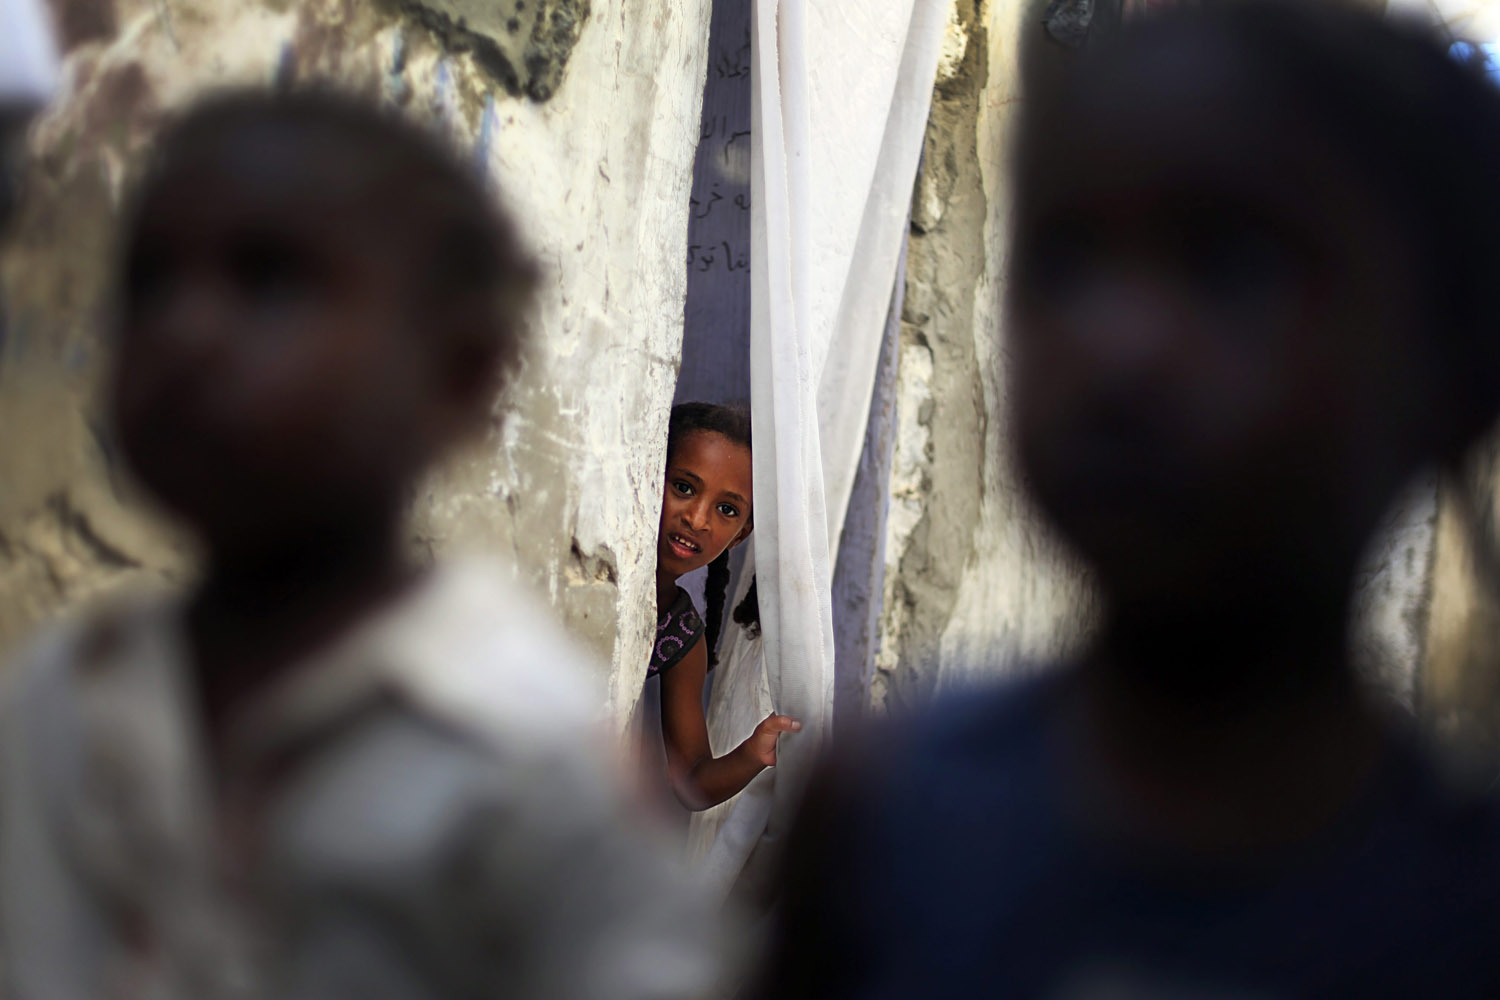 Aug. 11, 2012. Palestinian refugee children play in front of their house before Iftar, or breaking of the fast, during the Muslim Holy month of Ramadan in Al-Shabora refugee camp in Rafah City, Gaza.